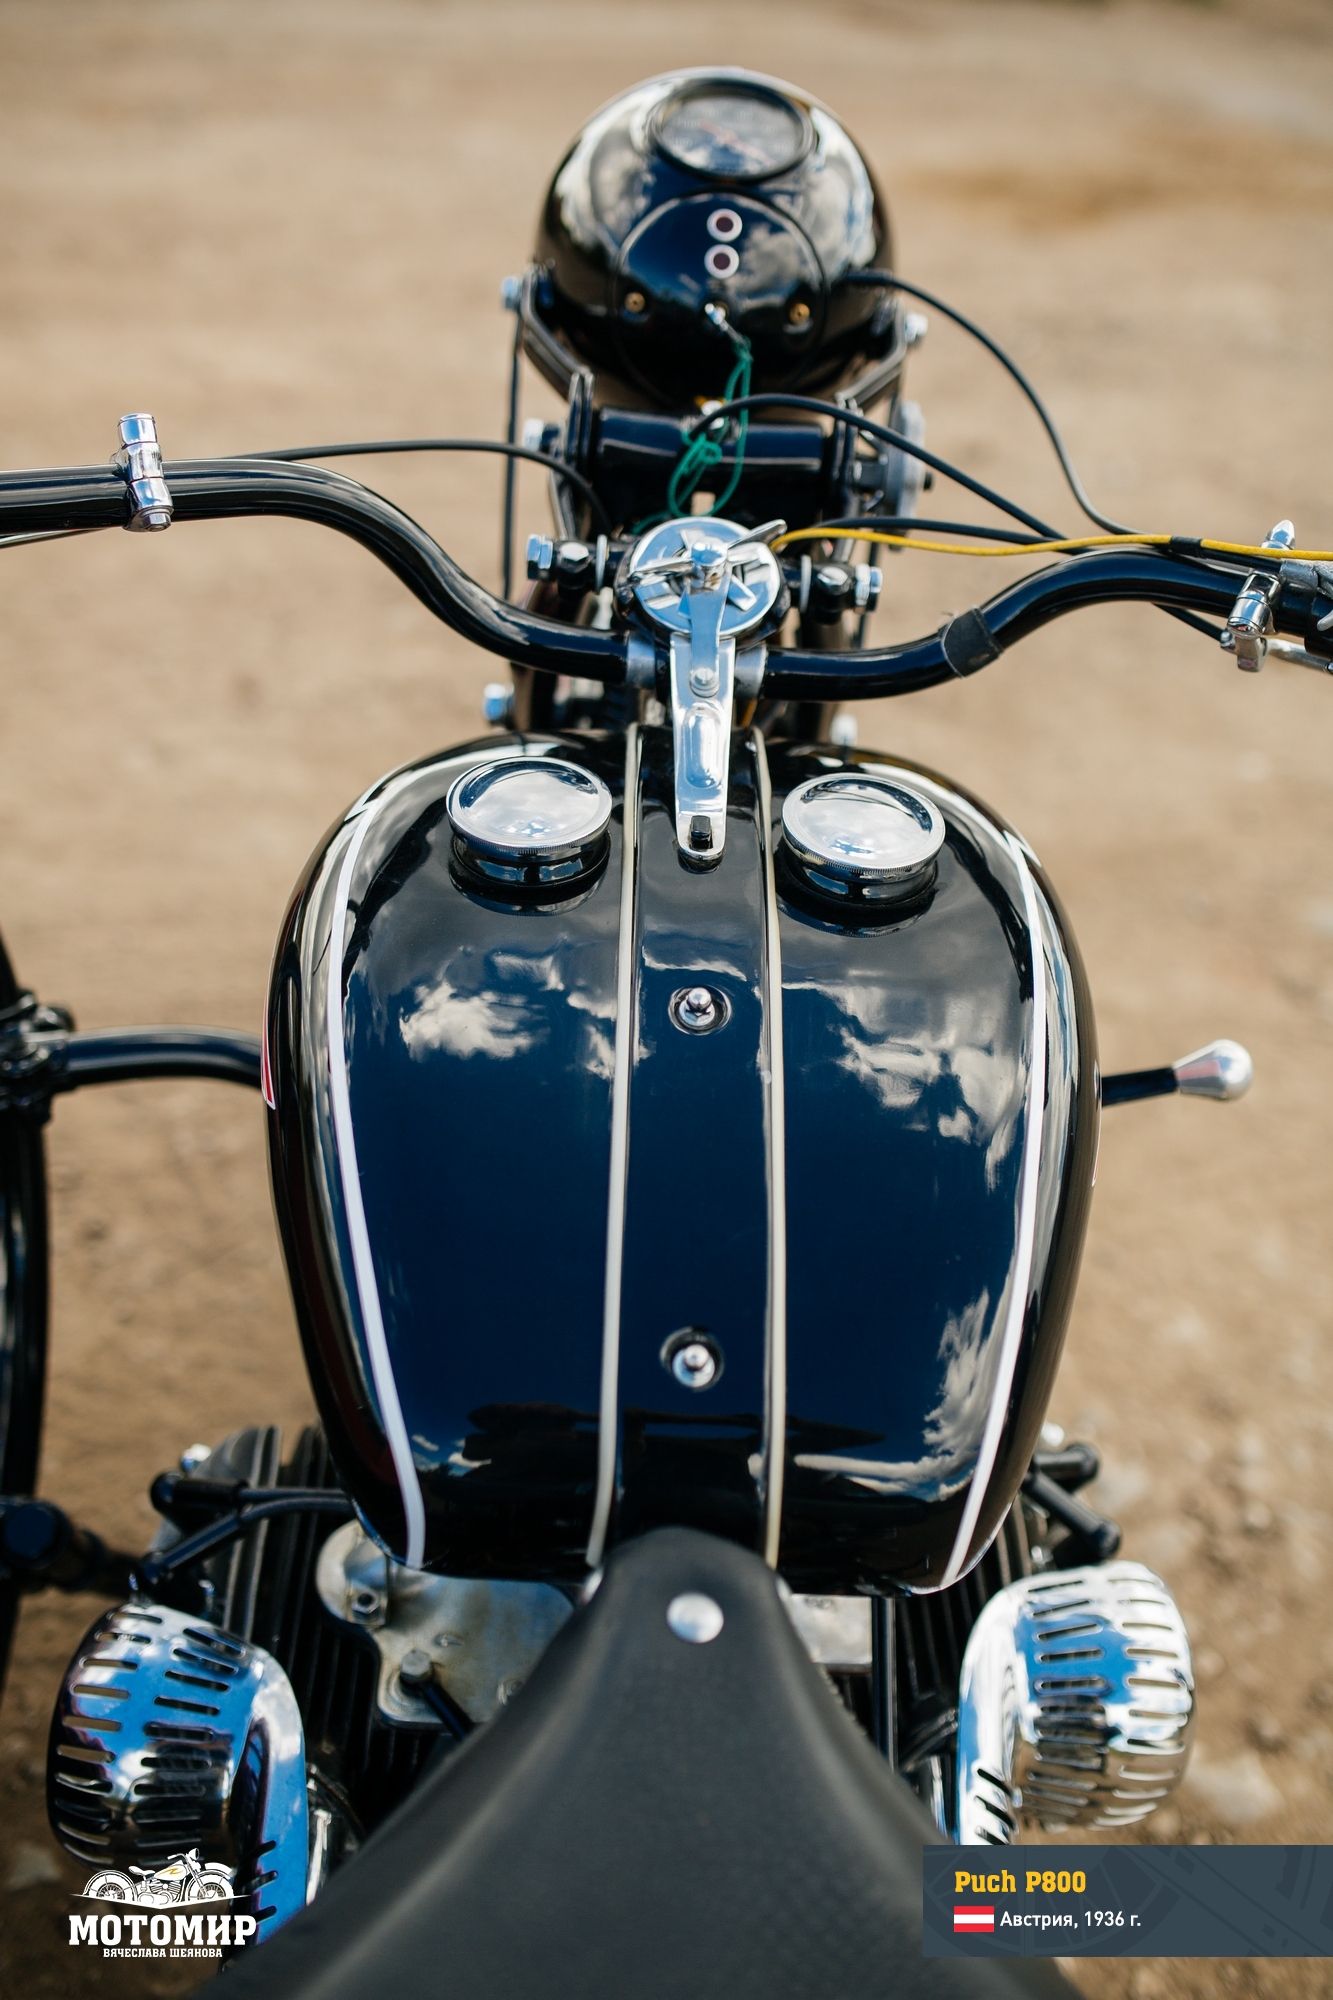 puch-p800-201510-web-26